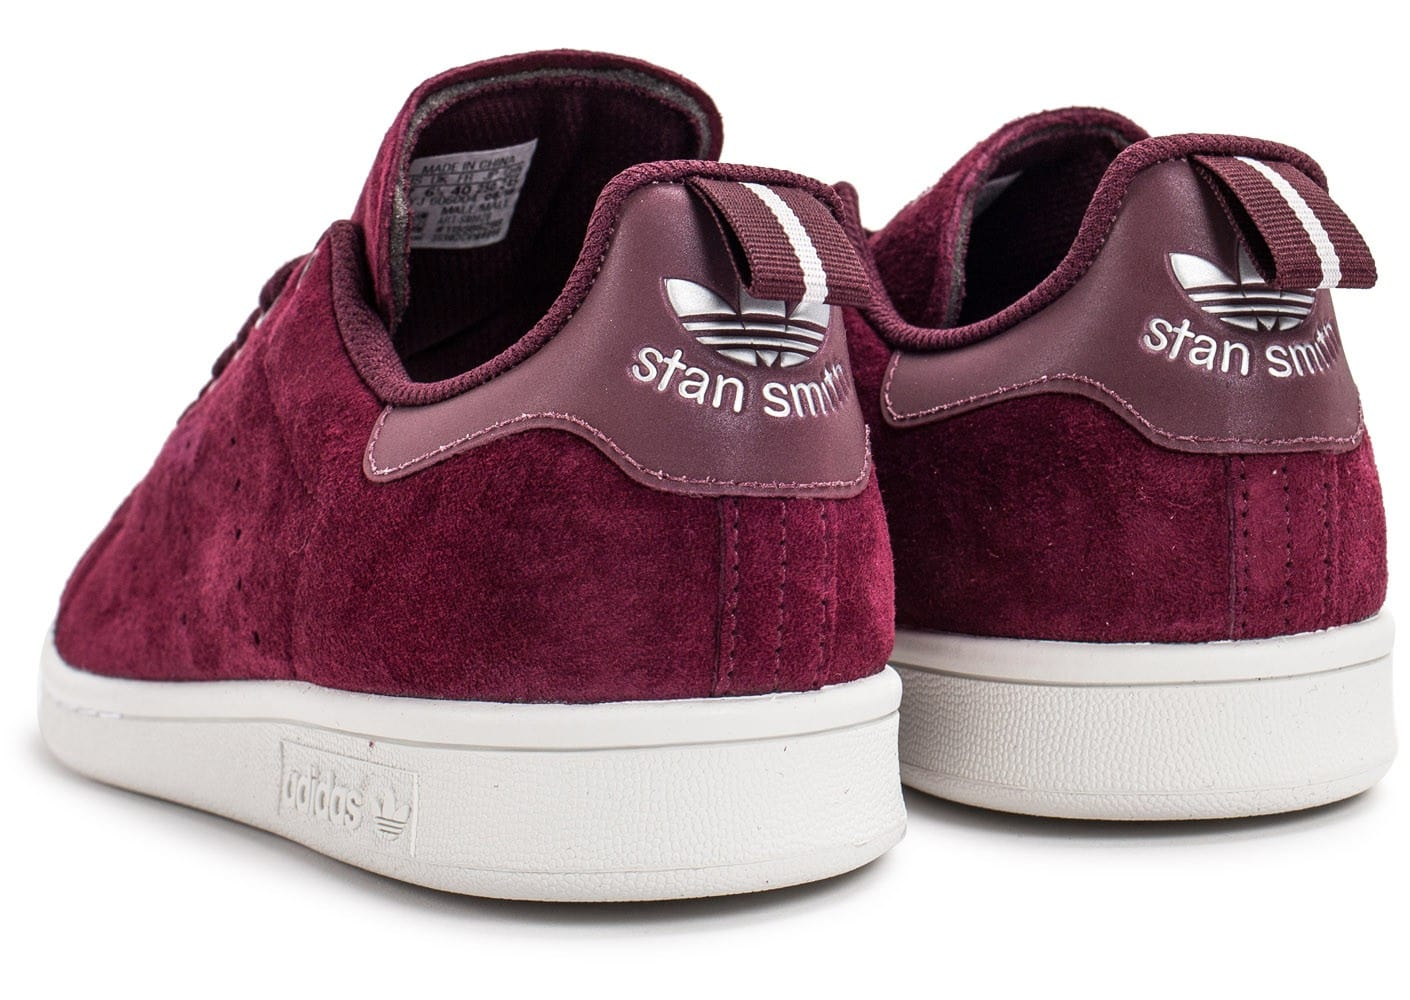 adidas Stan Smith Suede Bordeaux Rouge 44 ic5KSLS1Kw